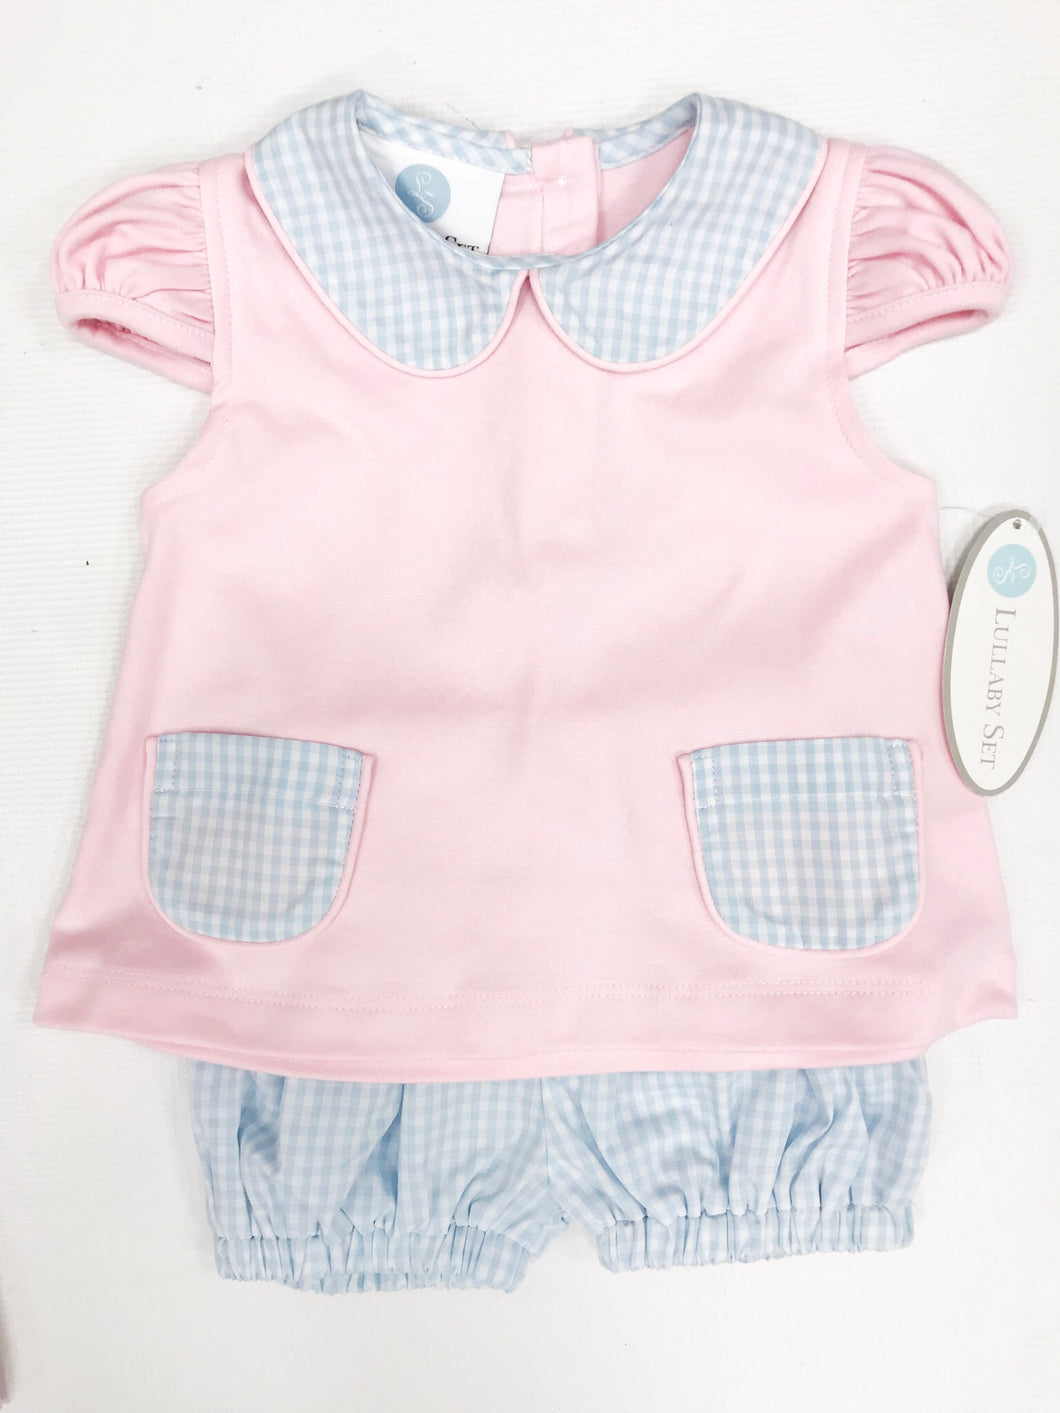 Pink Knit Top w Lt Blue Gingham Collar and Bloomer Set